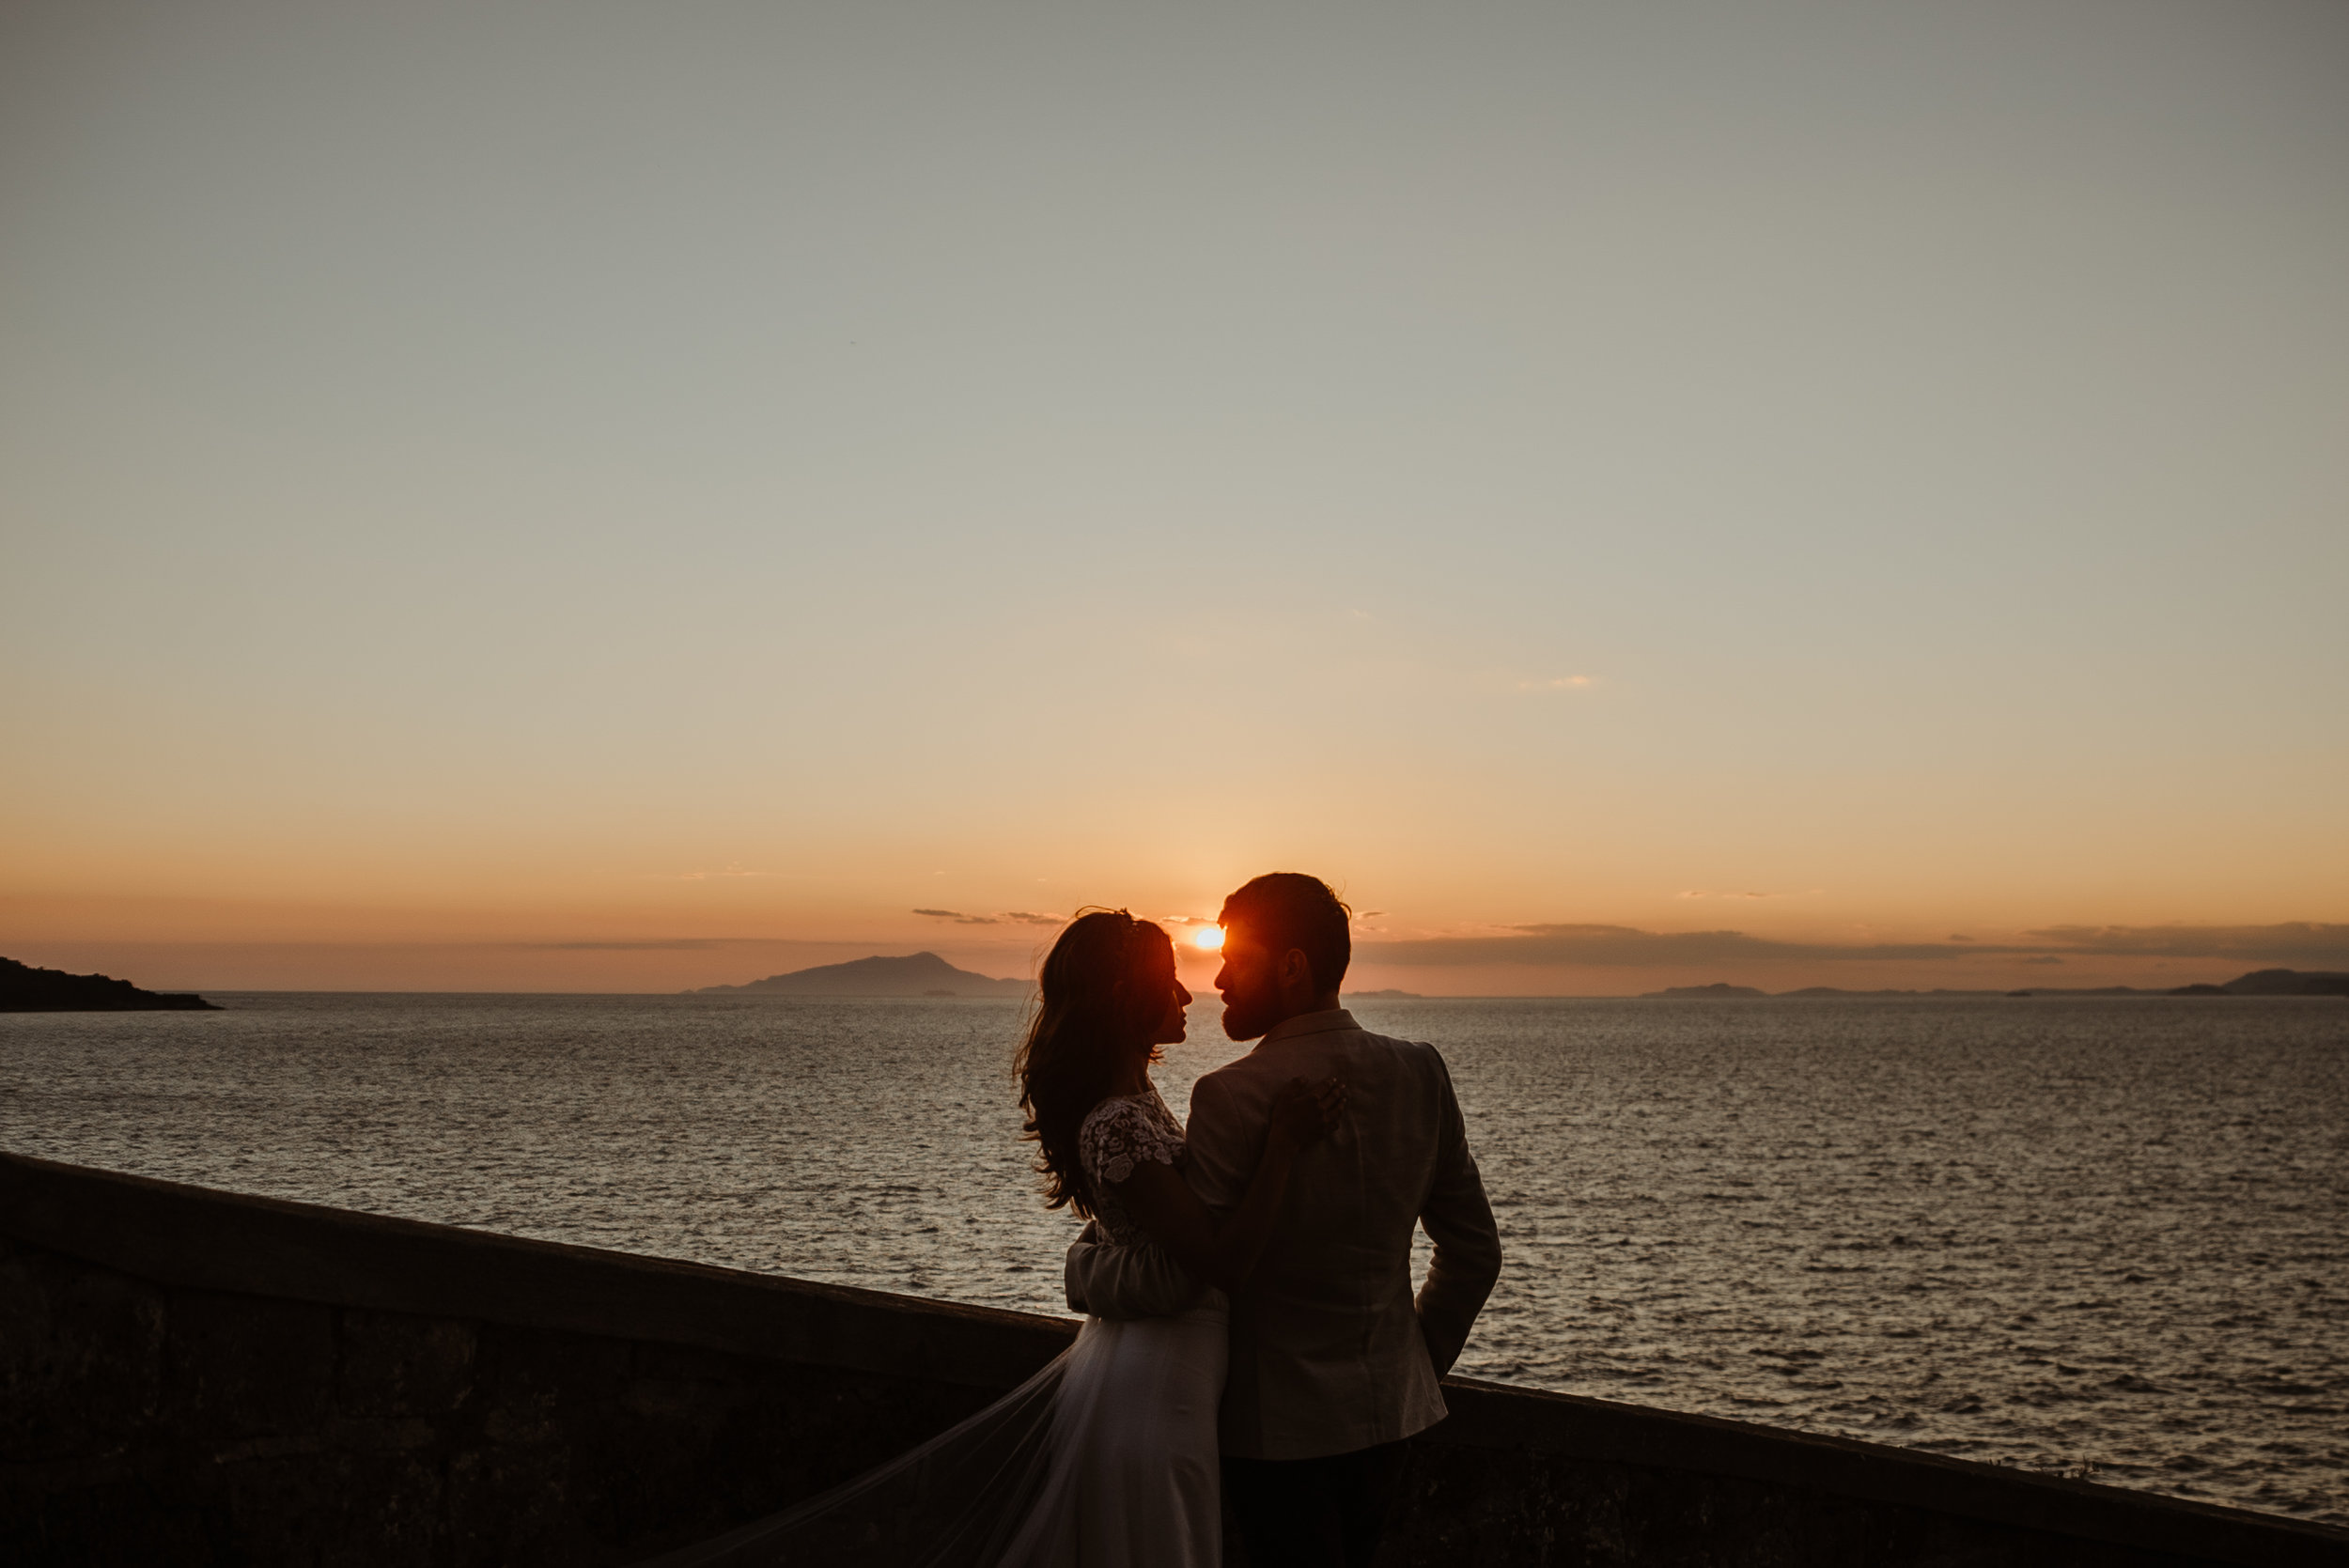 shoot me now films | destination wedding videography | destination wedding films | destination wedding videography | north east wedding videography | north east wedding films